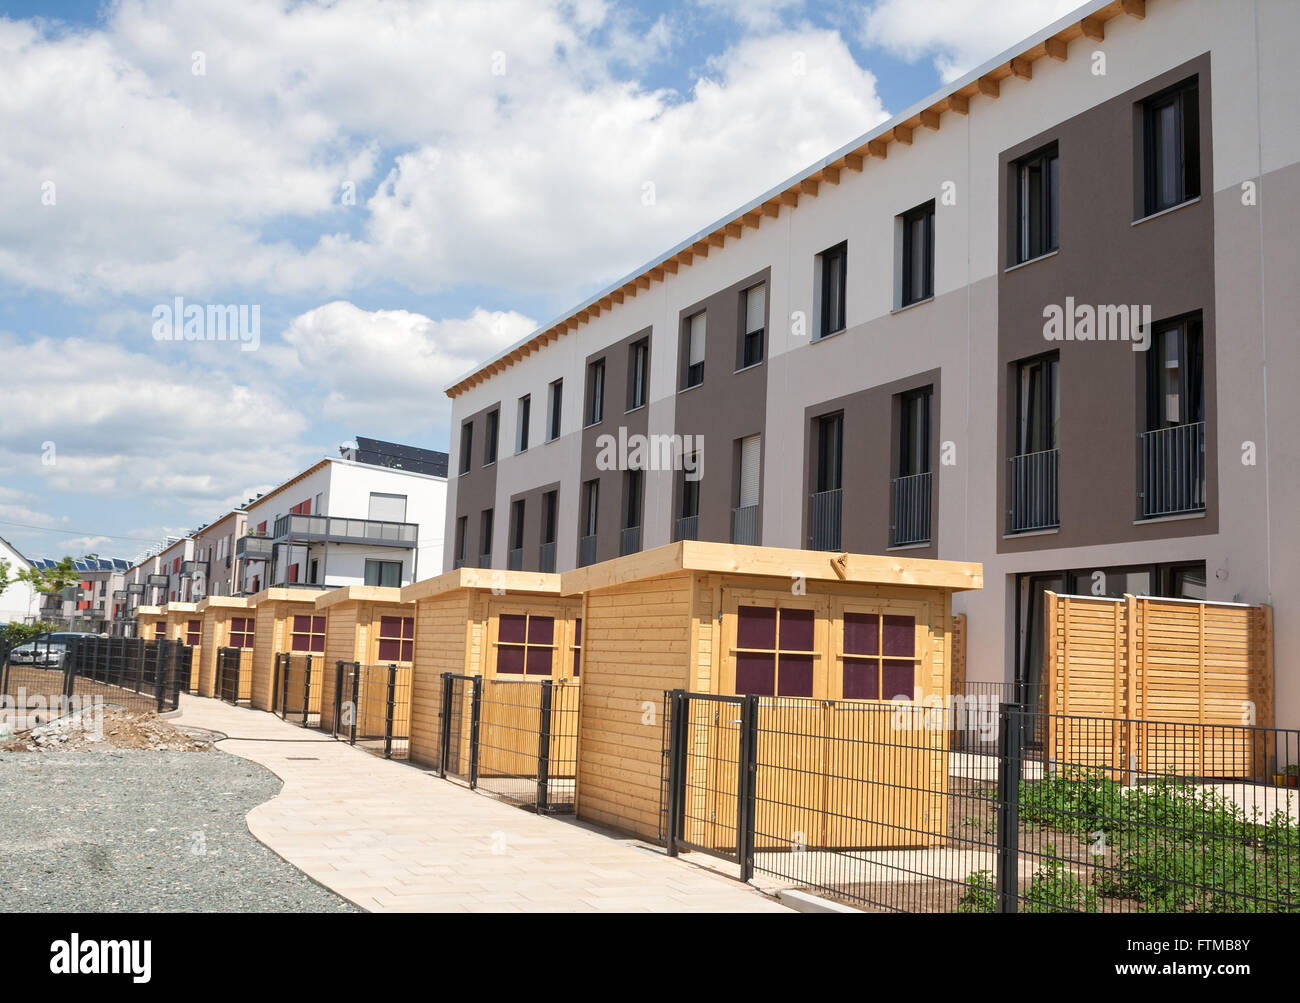 new housing estate with garden houses - Stock Image